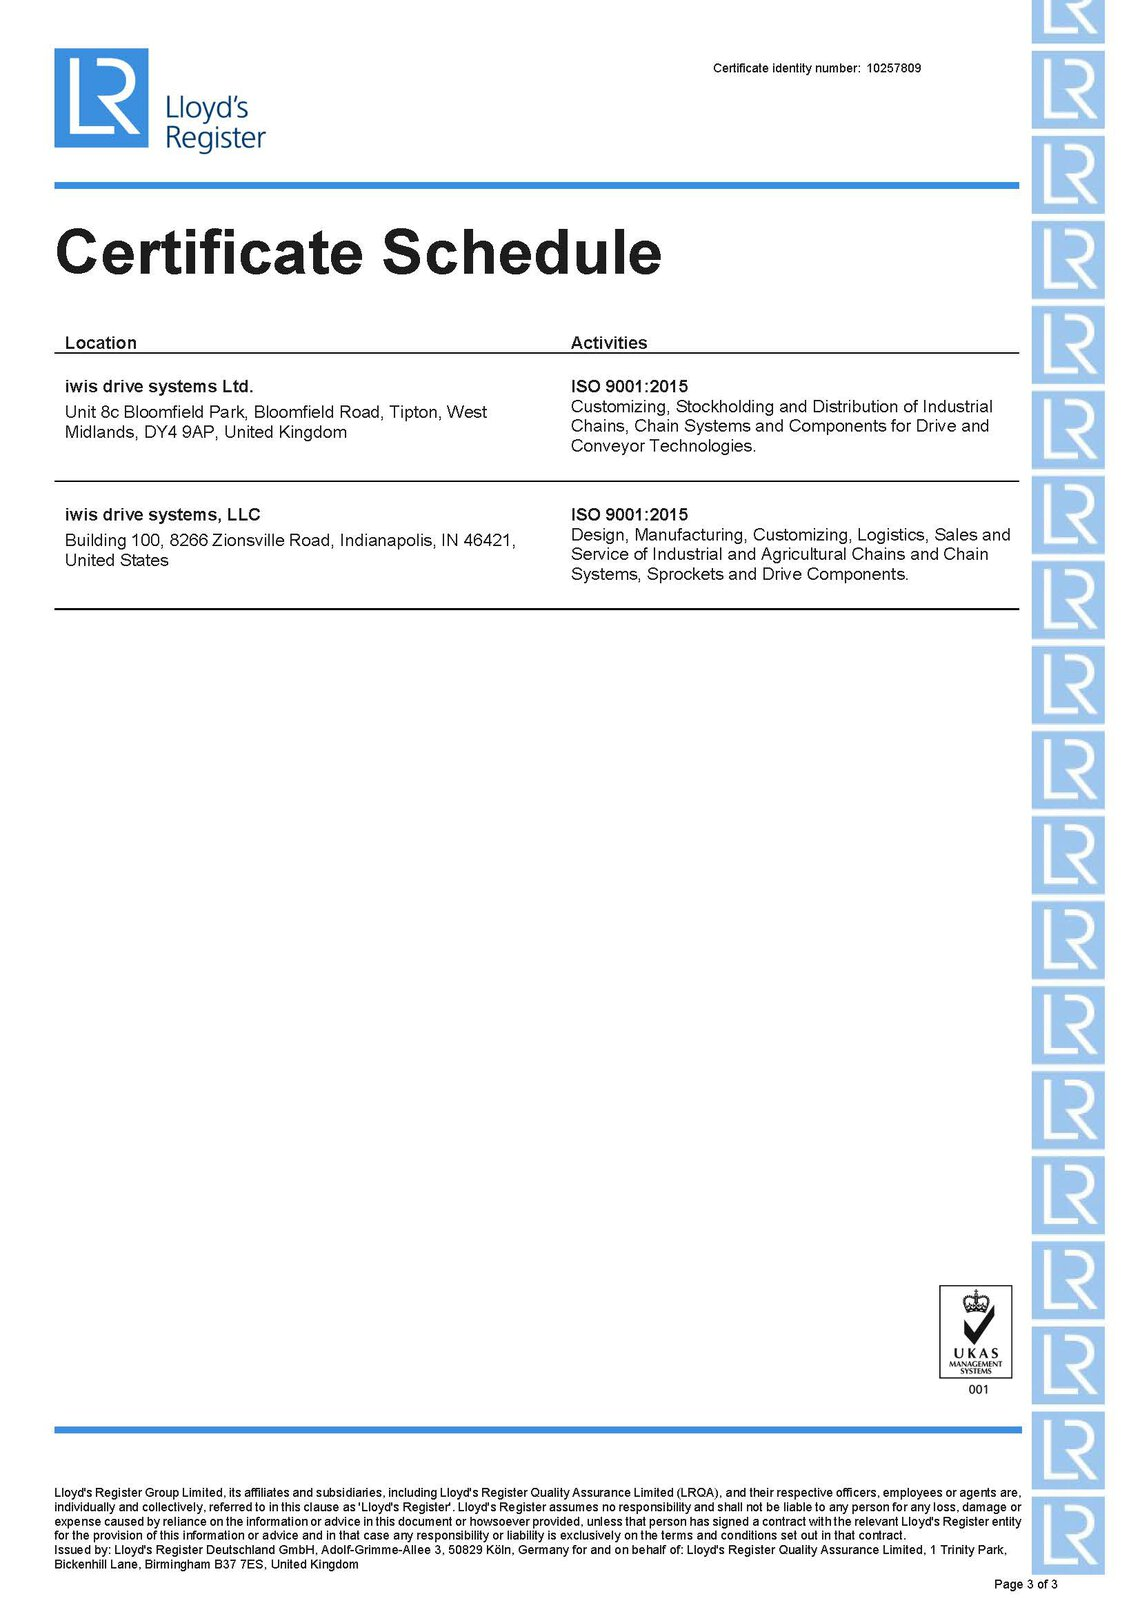 ISO9001 Multi-site Certificate schedule2 iwis